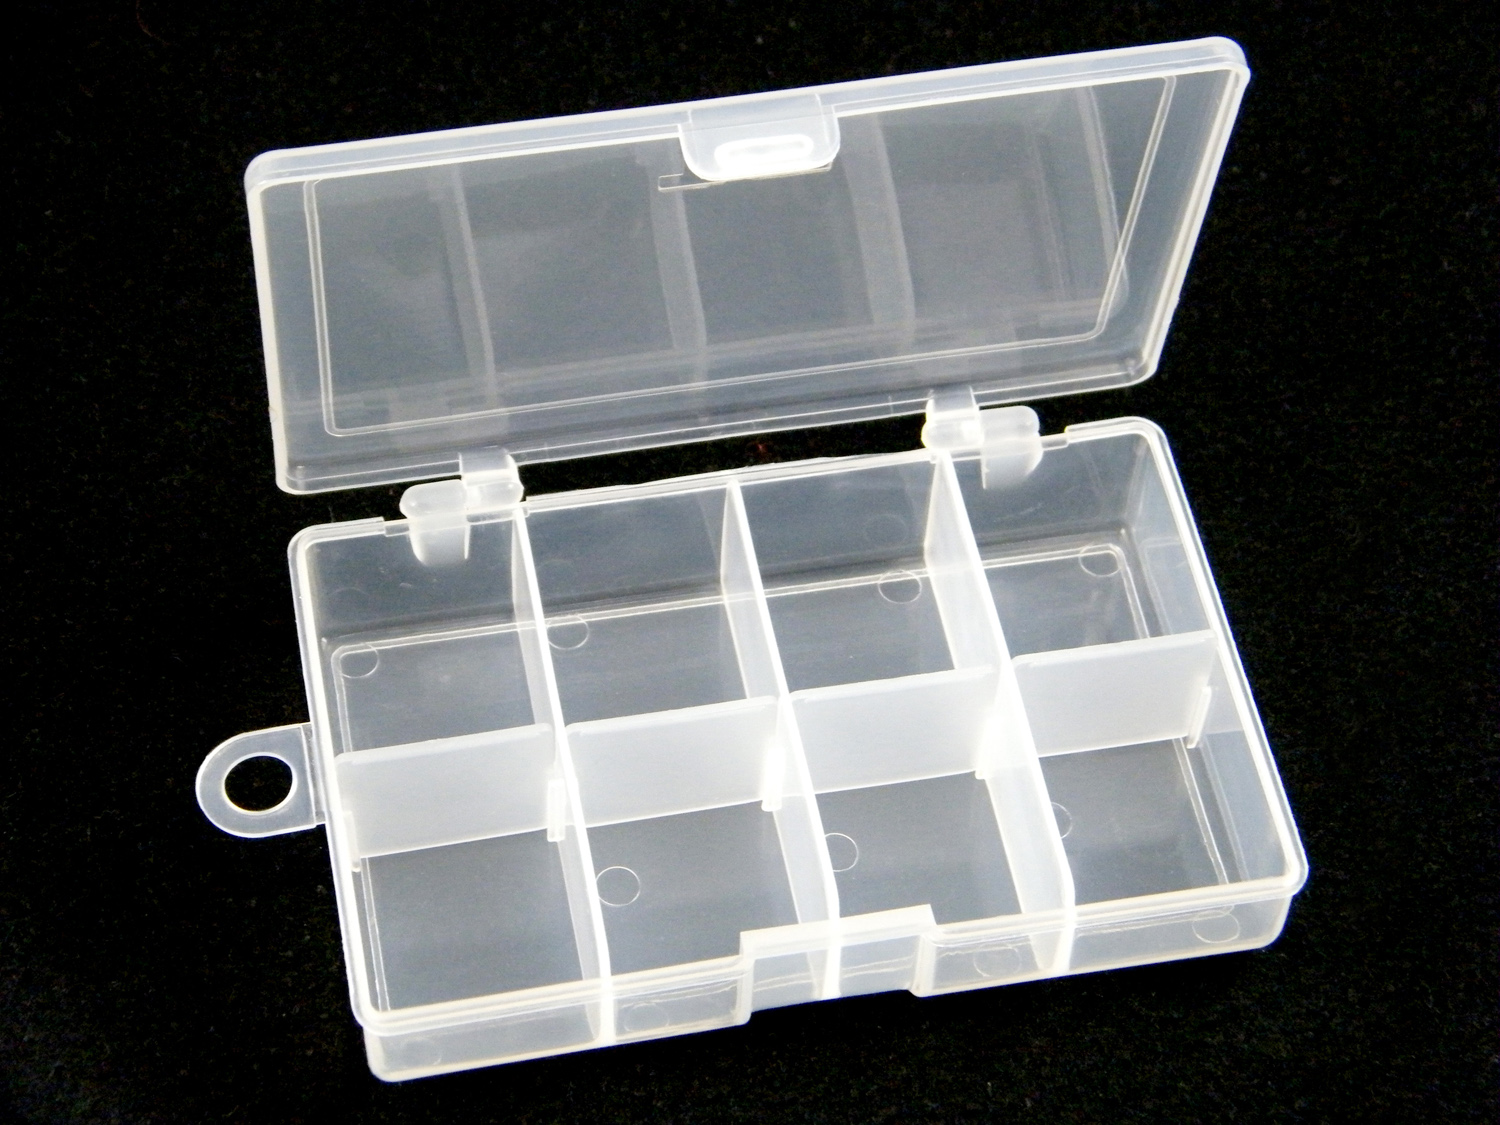 3 Pcs Lot QualyQualy 4.7*2.1*1.1in Plastic Fishing Tackle Box For Fishing Accessories Swivels Hooks 10 Slots by